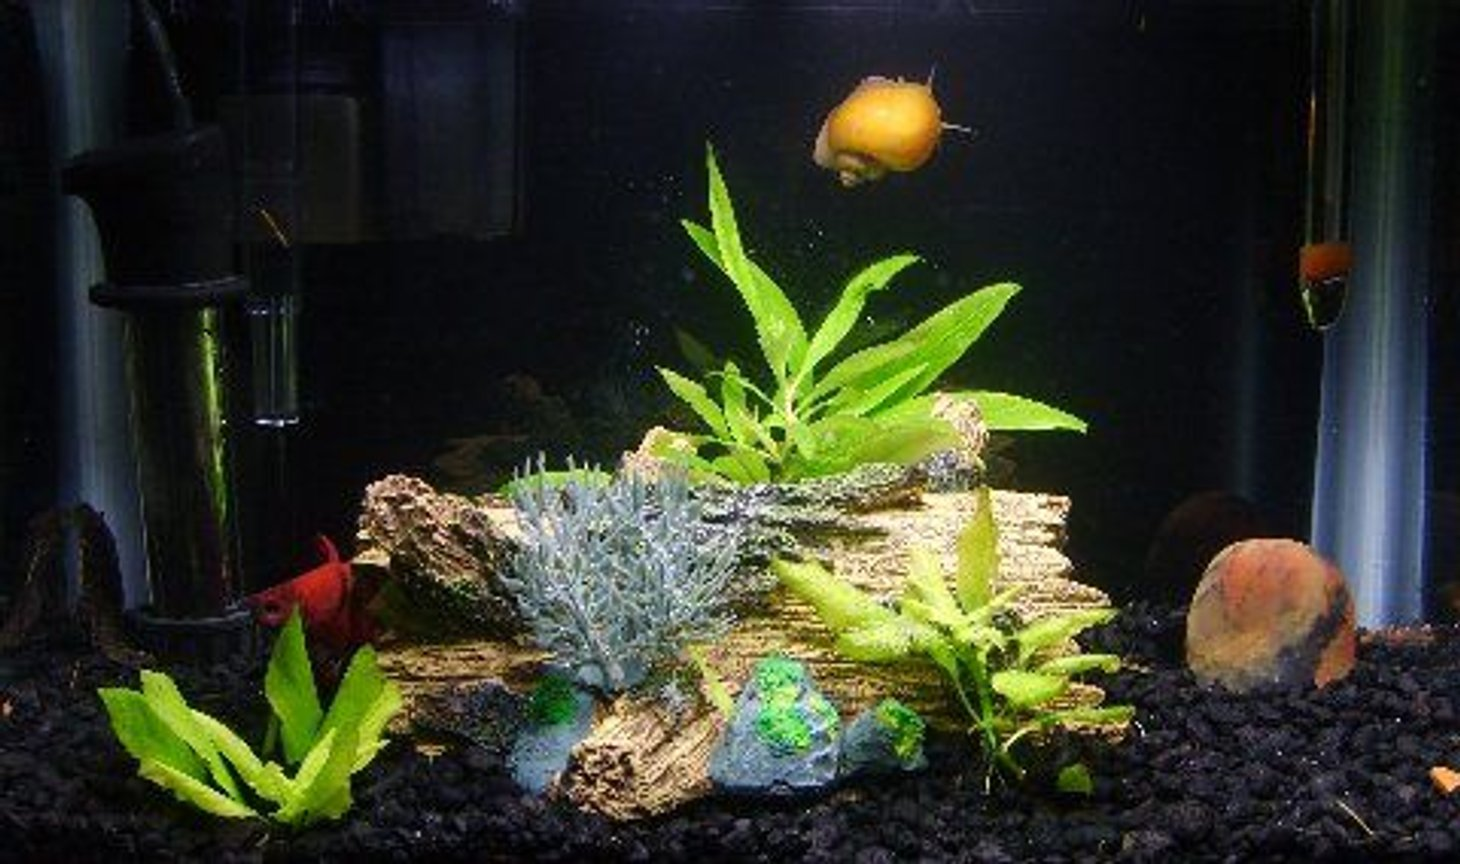 3 gallons freshwater fish tank (mostly fish and non-living decorations) - The Three Amigos